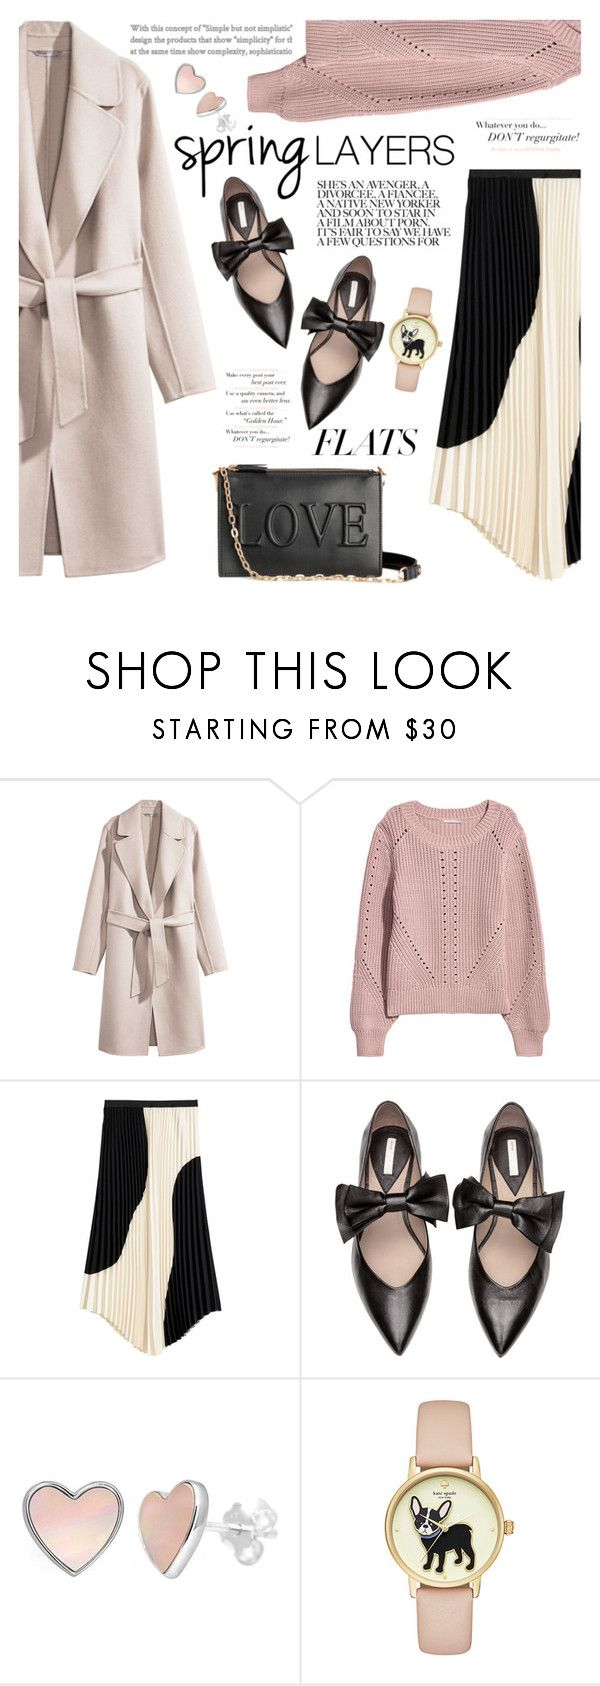 """""""Magic Slippers: Fancy Flats"""" by crochetragrug ❤ liked on Polyvore"""